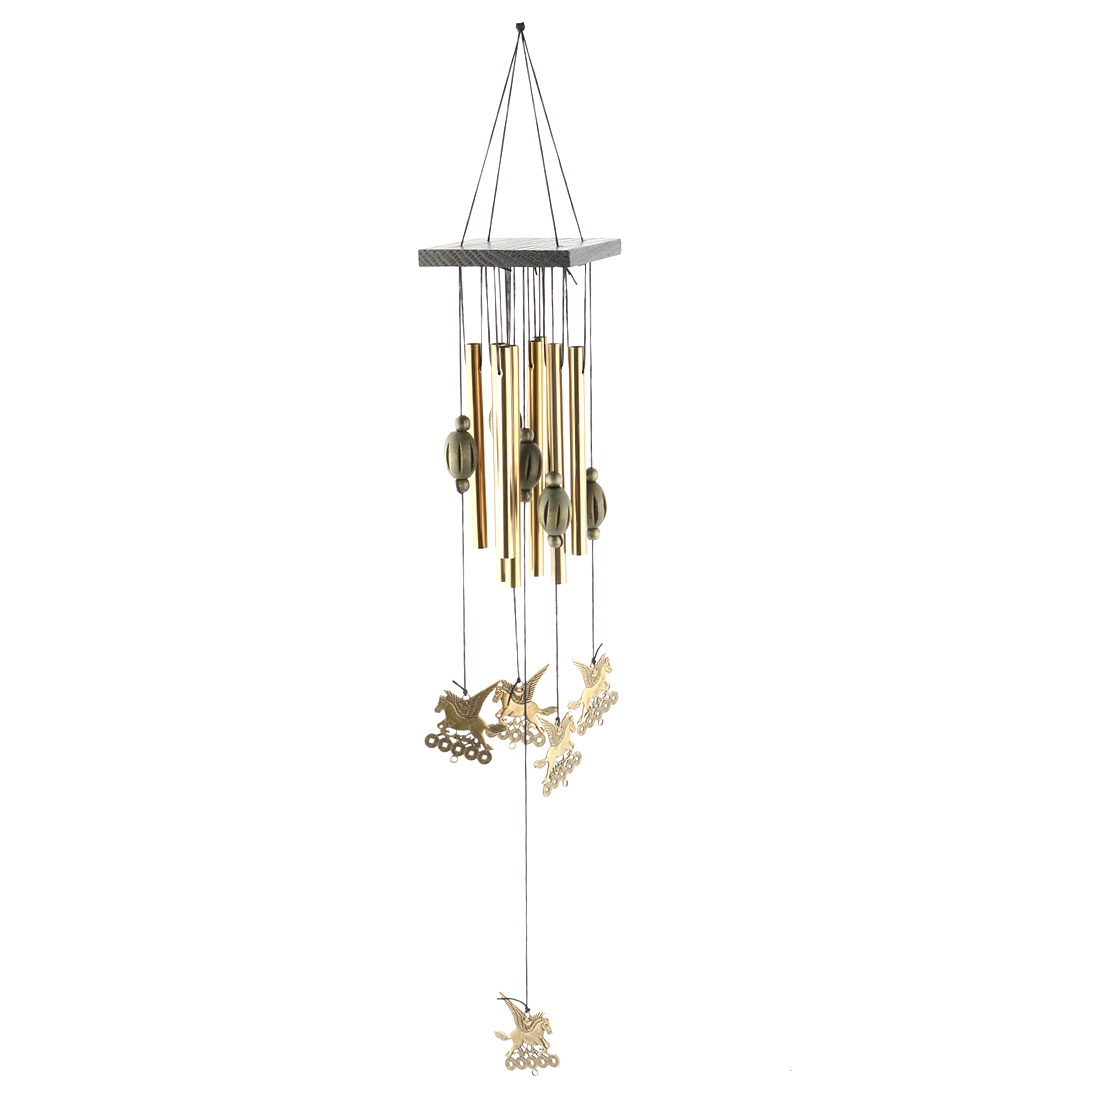 Home Metal Tubes Flying Horse Hanging Birthday Gift Wind Chime Bell Windbell